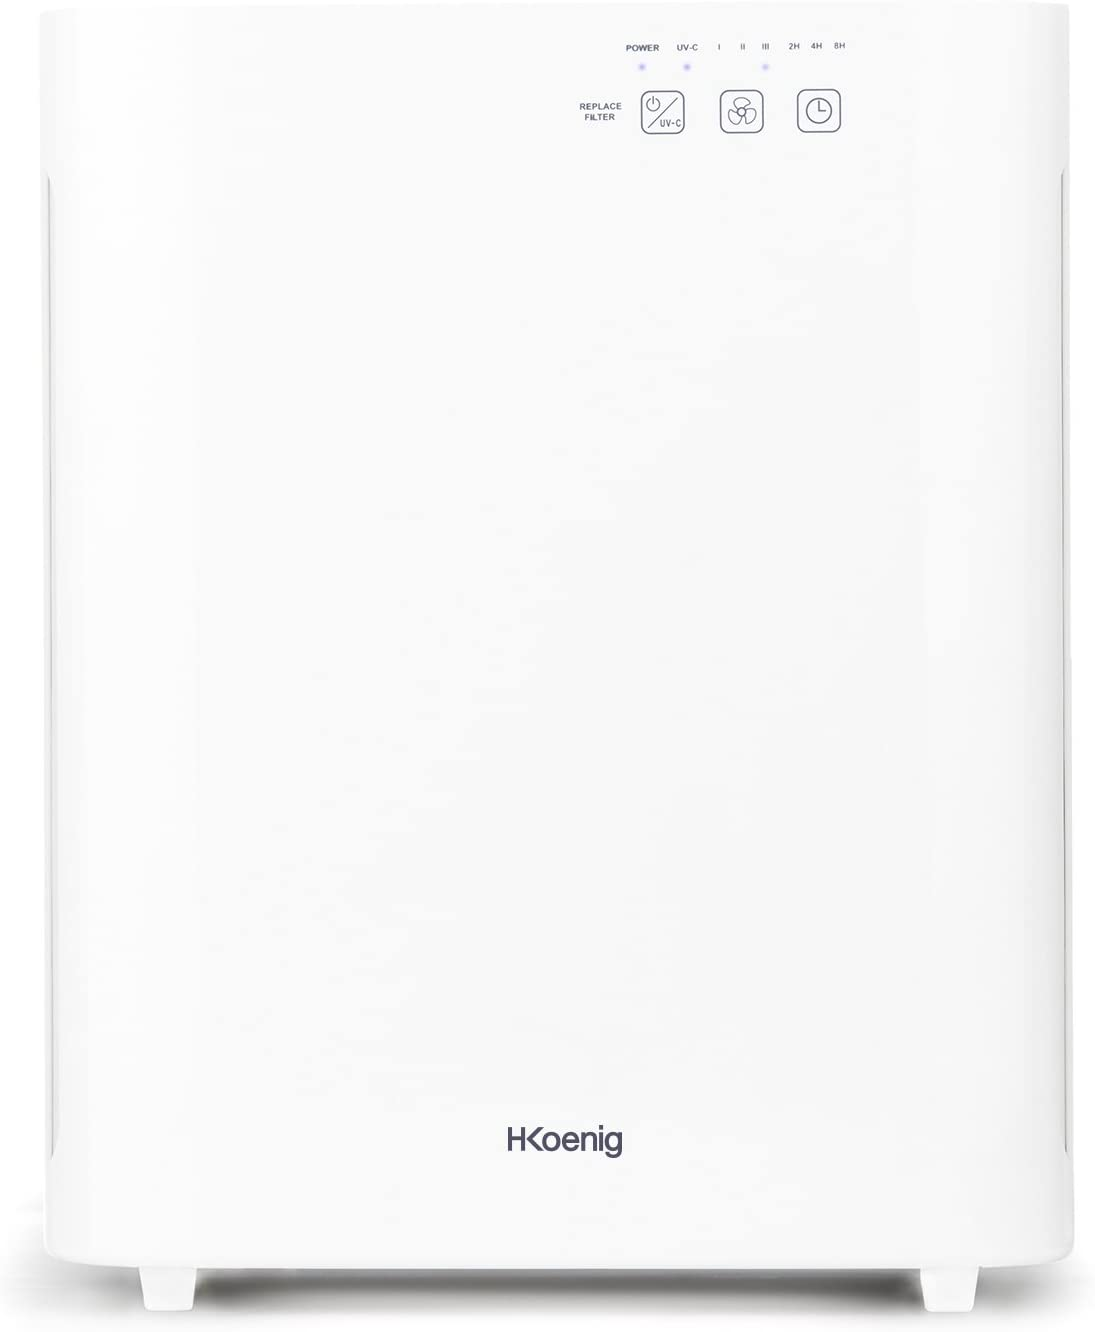 H. Koenig air800 purificador de aire PureAir Plus: Amazon.es: Hogar